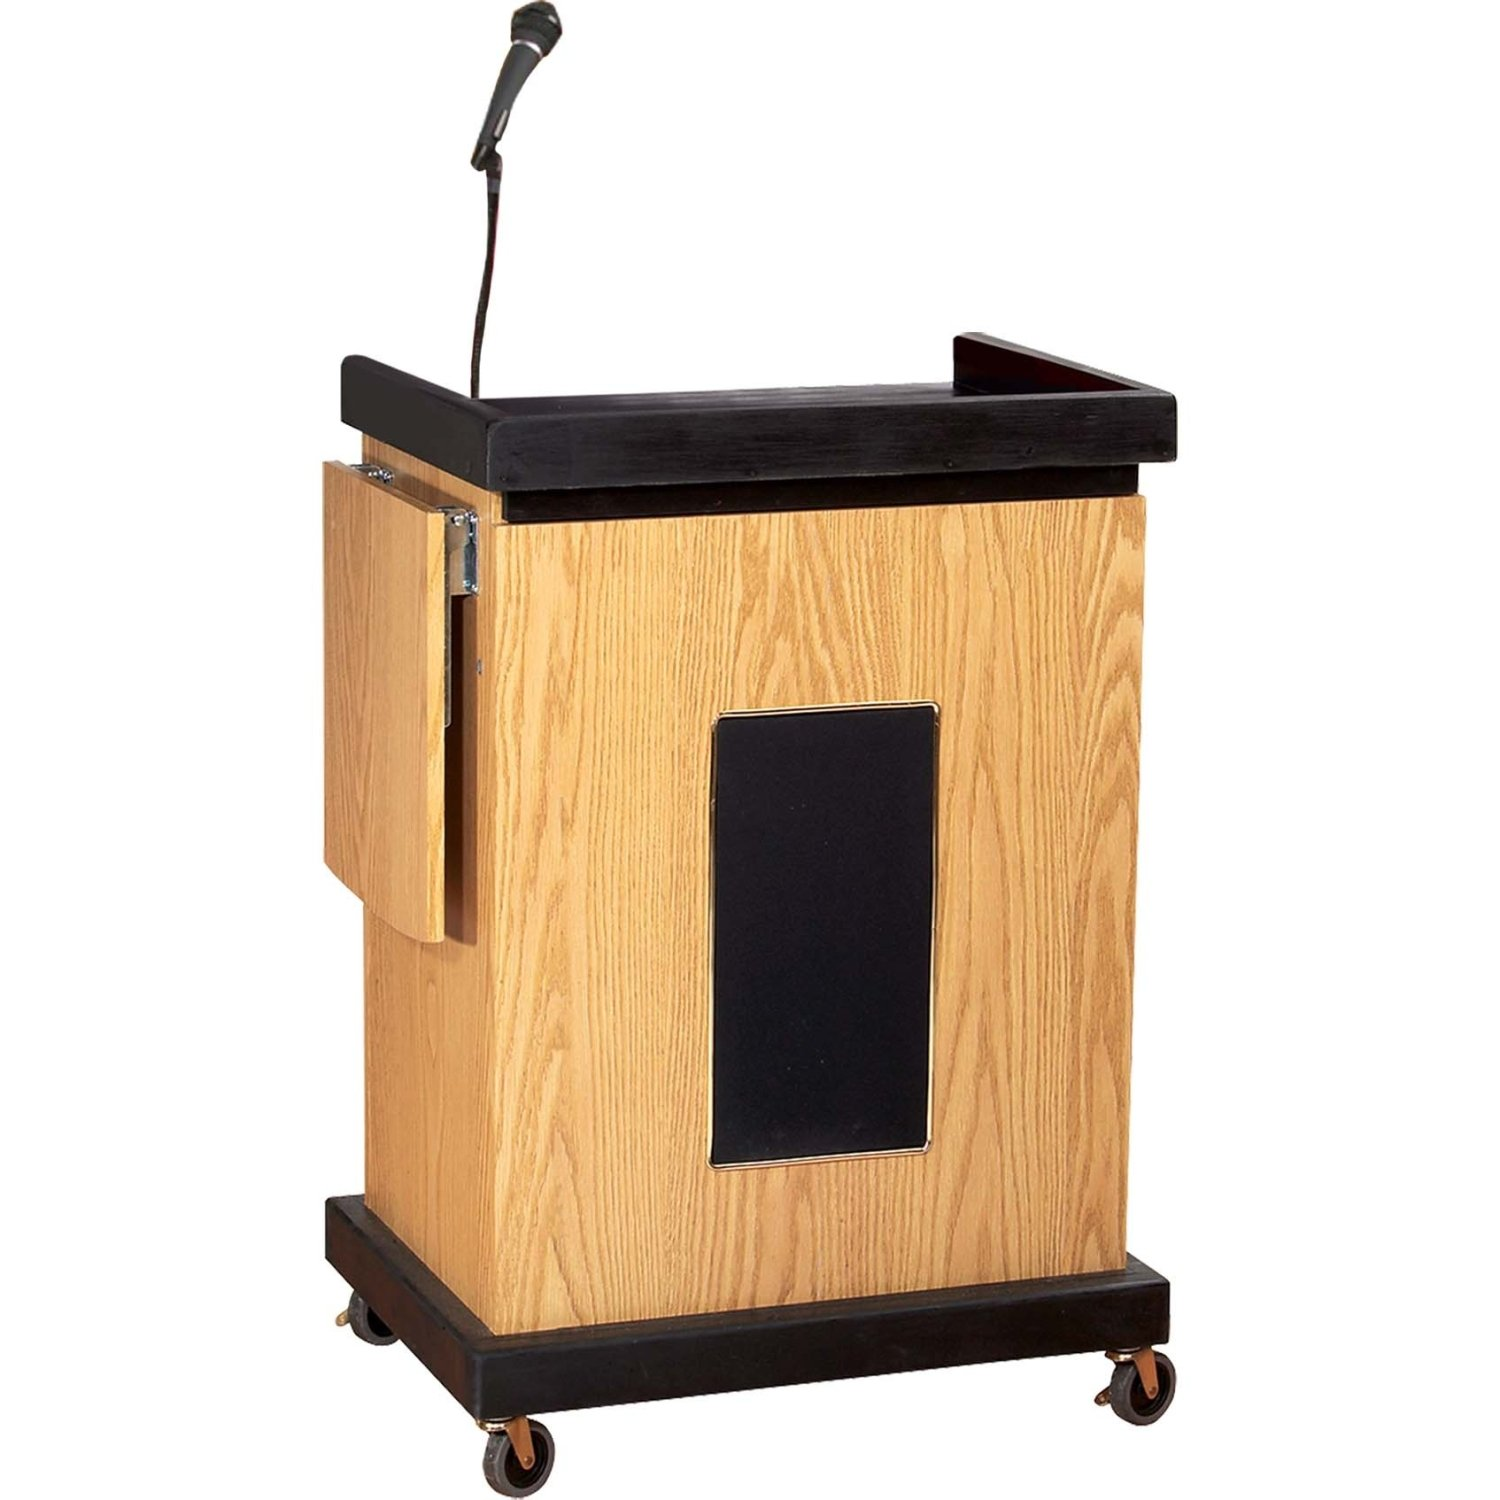 Oklahoma Sound SCL-S-OK Smart Cart Lectern with Sound, 28 Width x 41 Height x 21 Depth, Light Oak